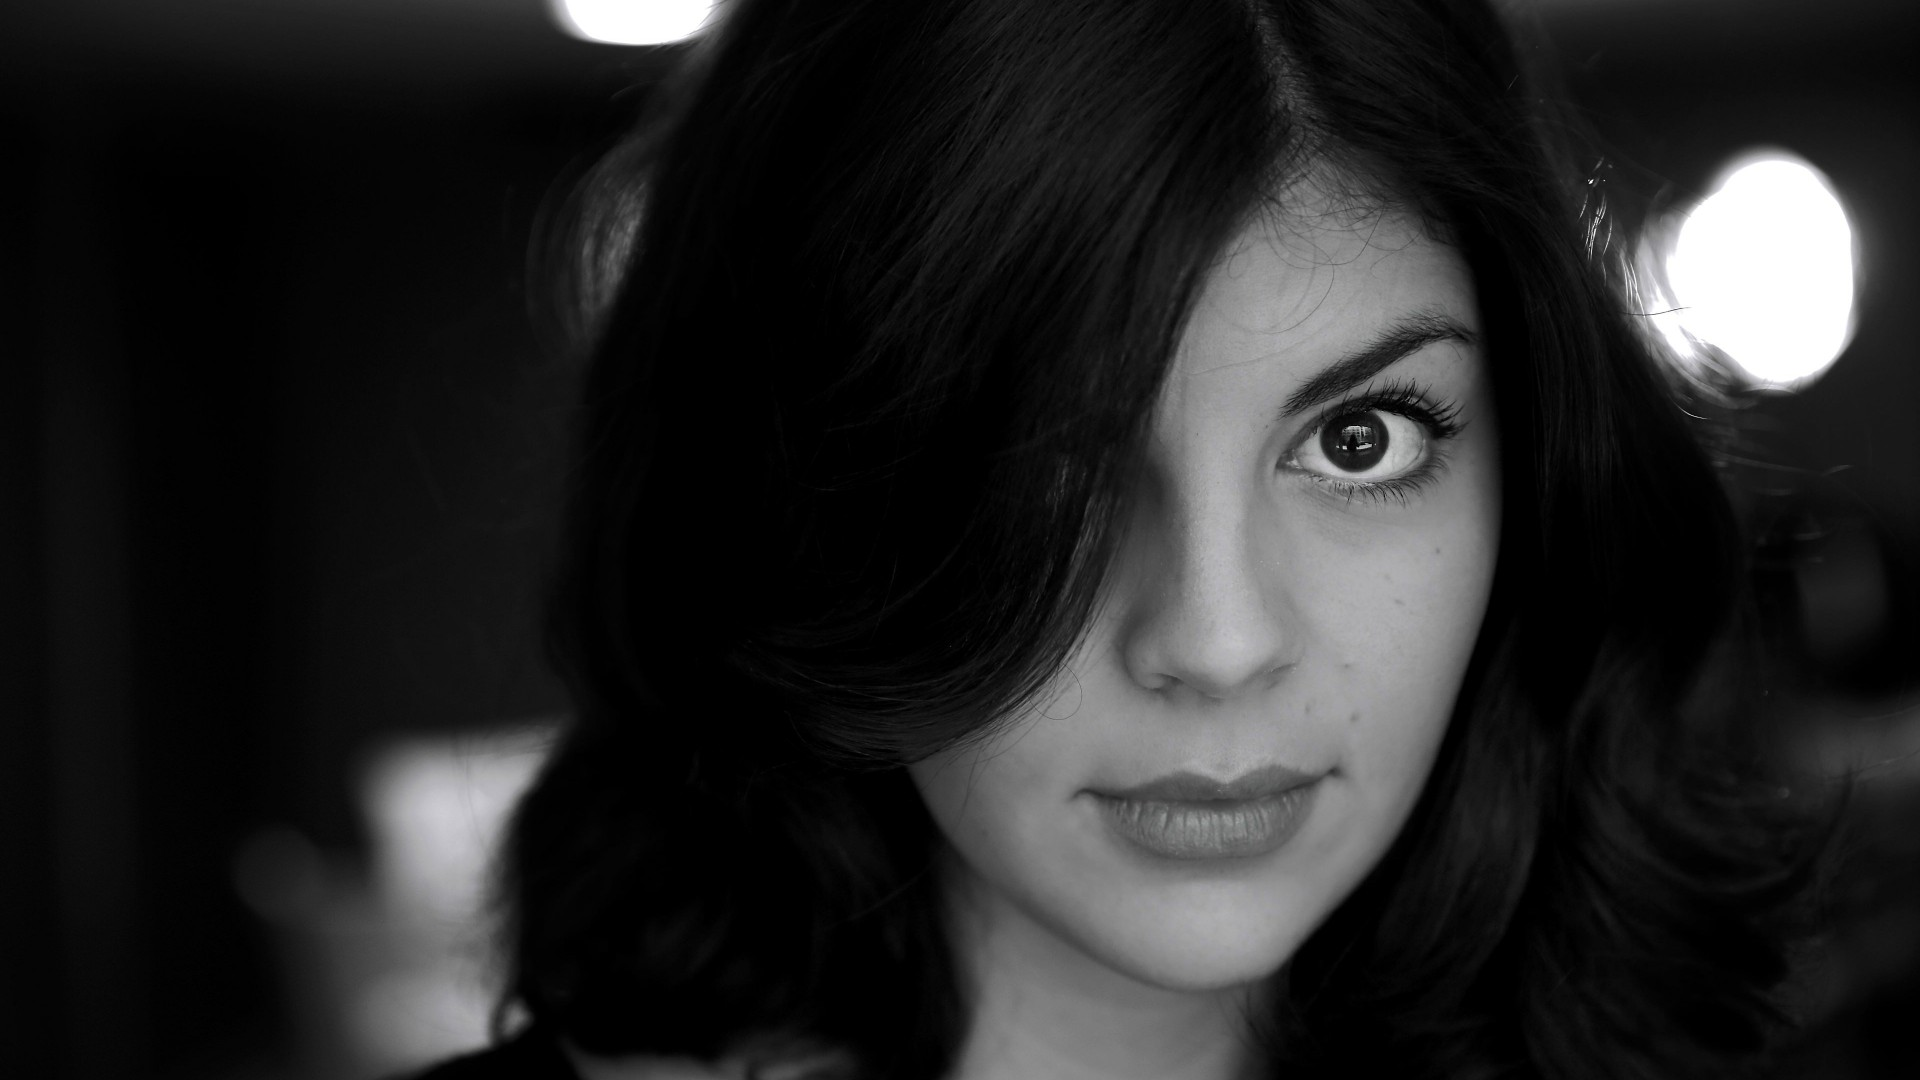 Nikki Yanofsky Black & White Portrait Wallpaper for Desktop 1920x1080